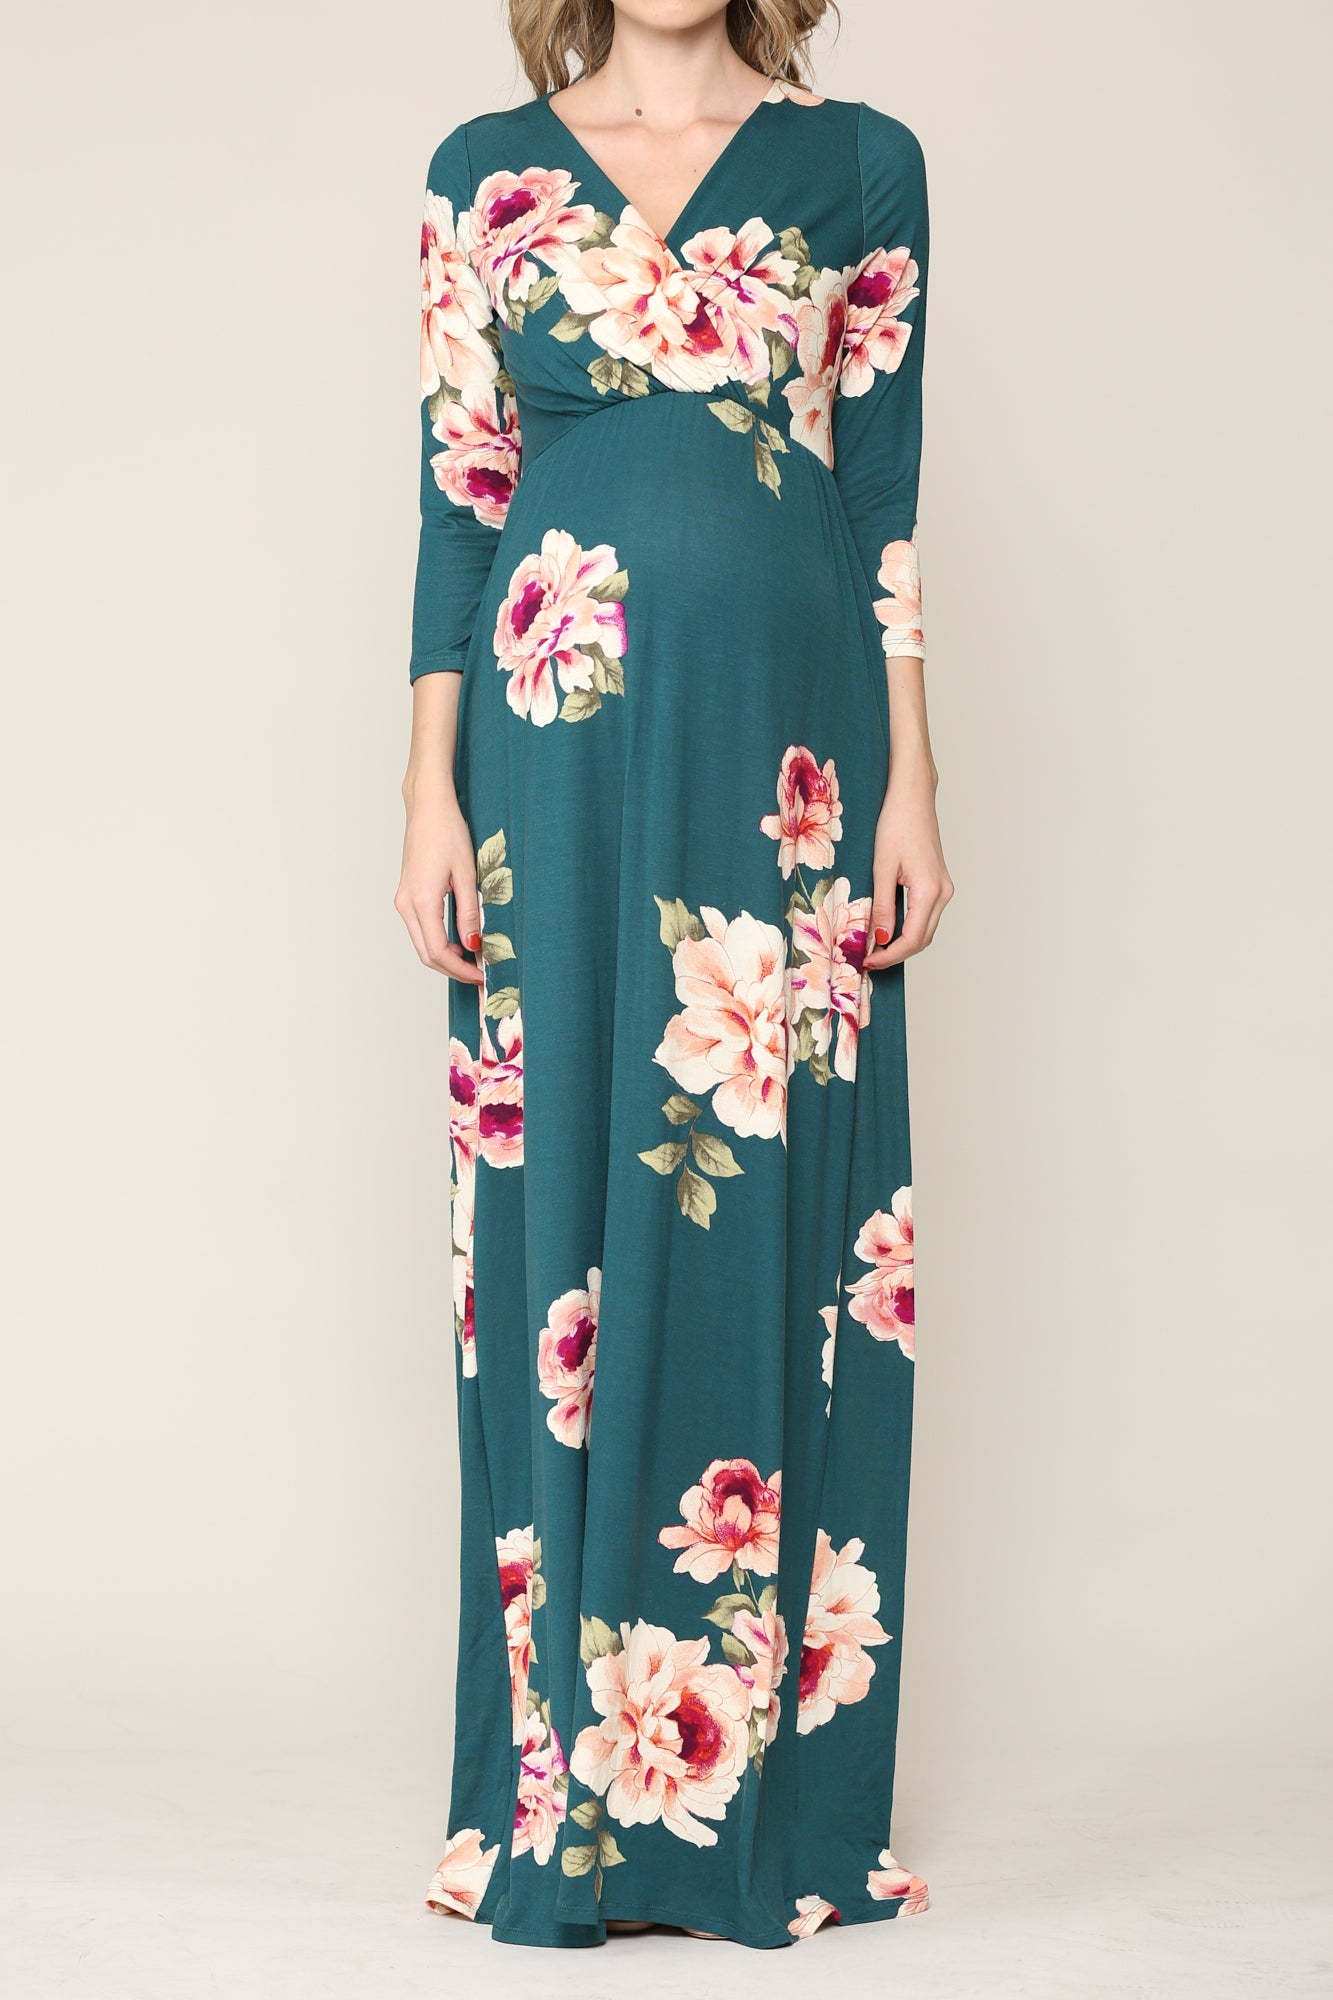 FLORAL 3/4 SLEEVE MATERNITY/NURSING DRESS